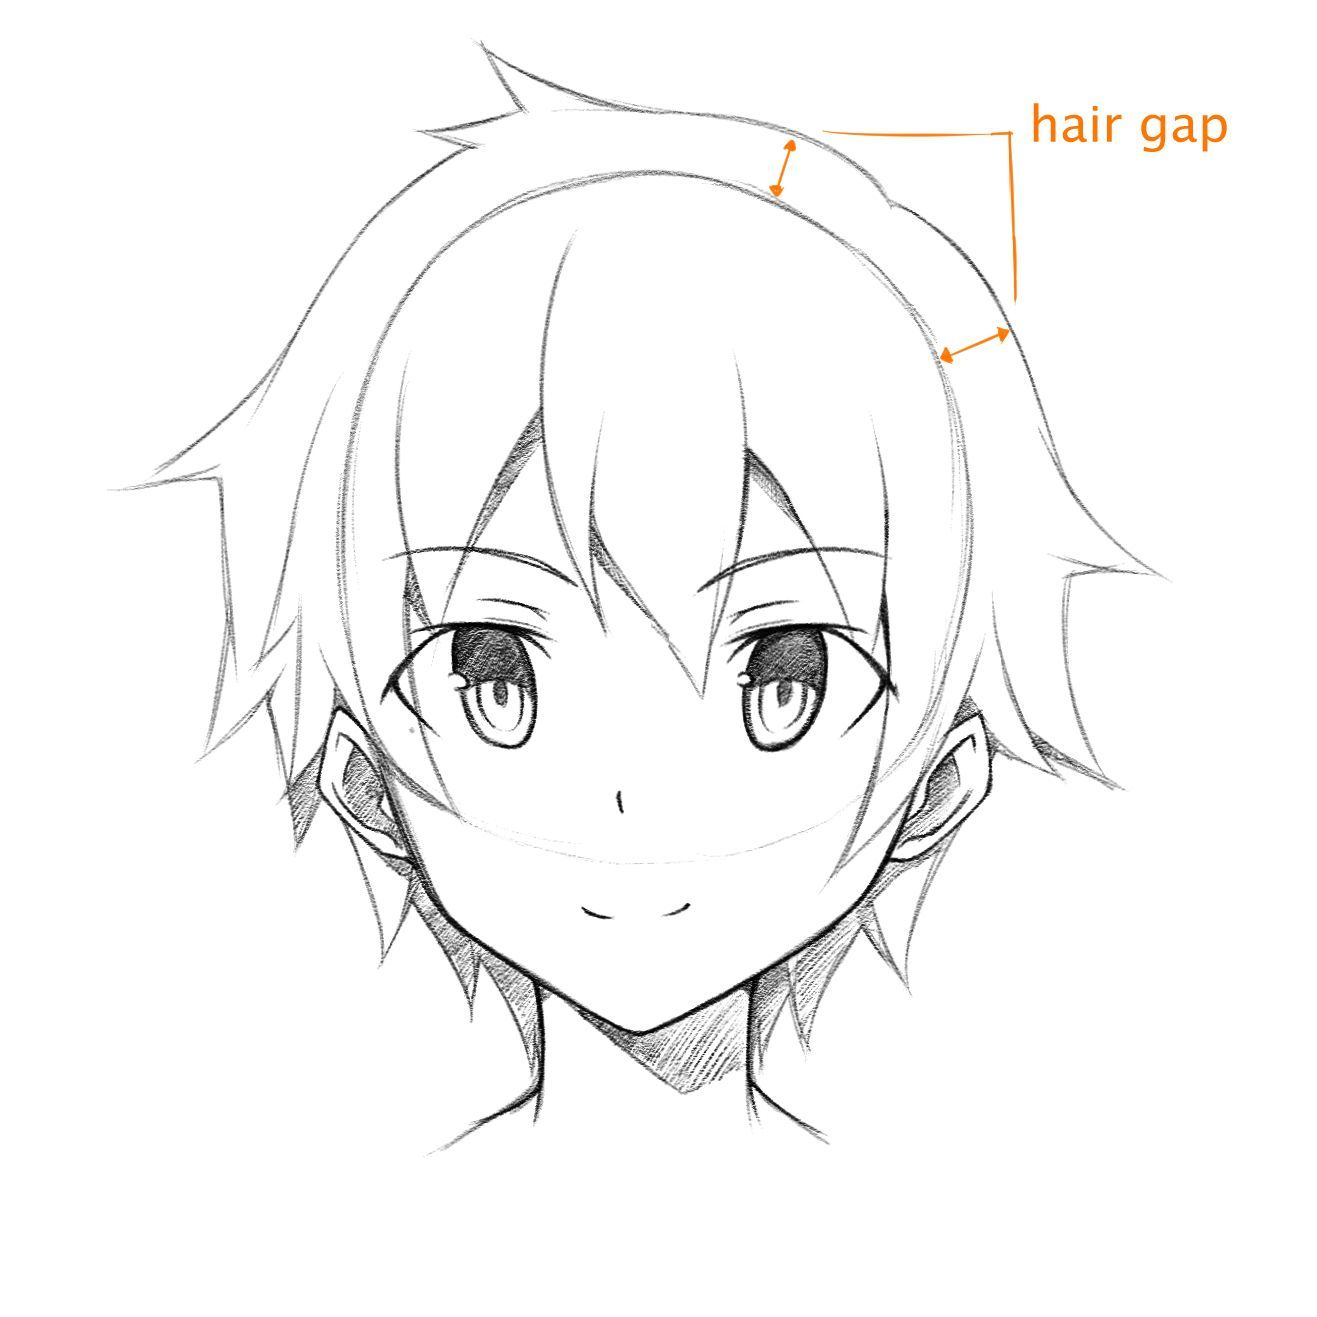 Uncomplicated Tutorials Manga How To Draw Faces How To Draw Anime And Manga Male Head And Face In 2020 Manga Drawing Anime Drawings Tutorials Drawings